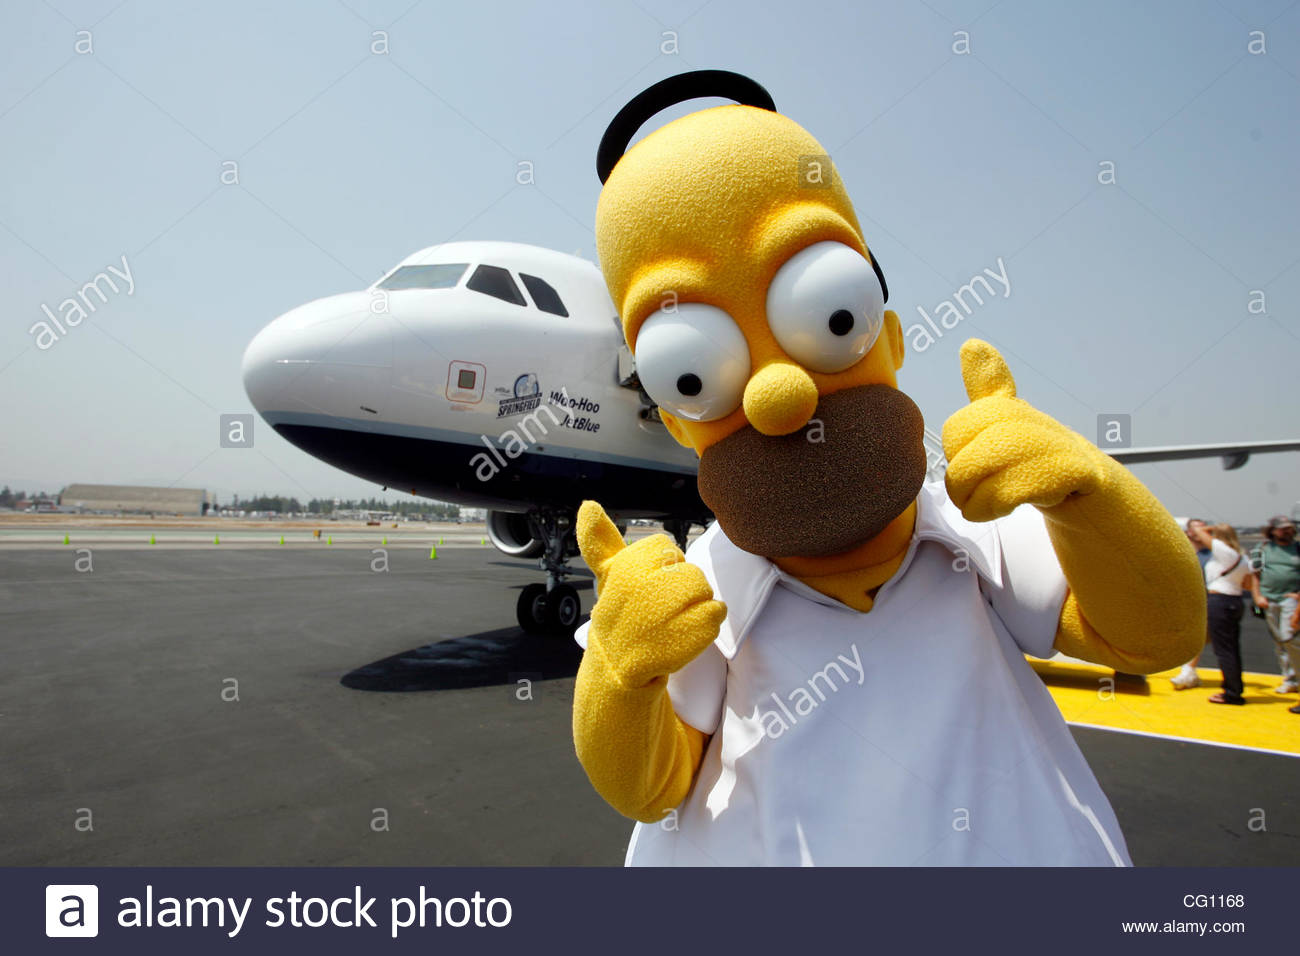 Character From The Simpsons Movie Homer Stands On The Tarmac Stock Photo Alamy